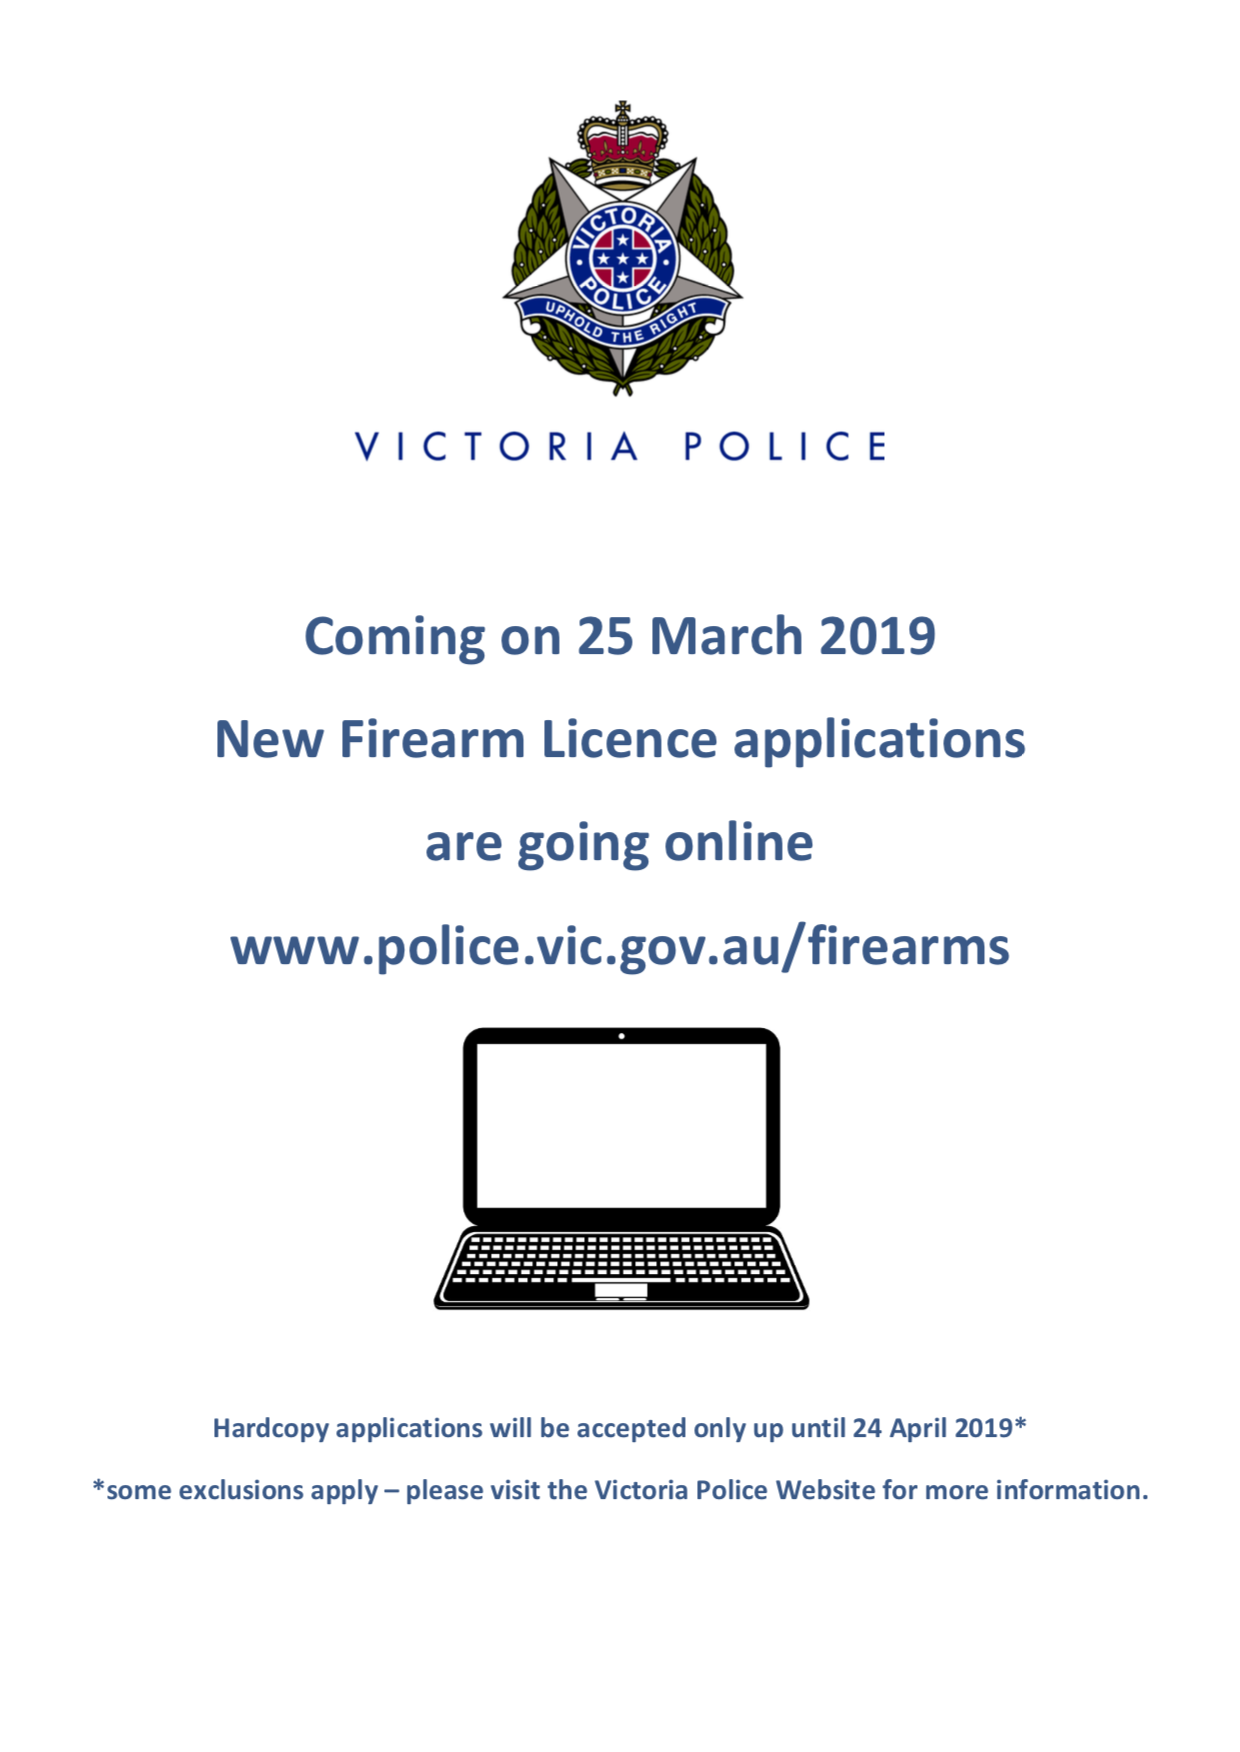 Changes to Paintball Licensing Rules in Victoria